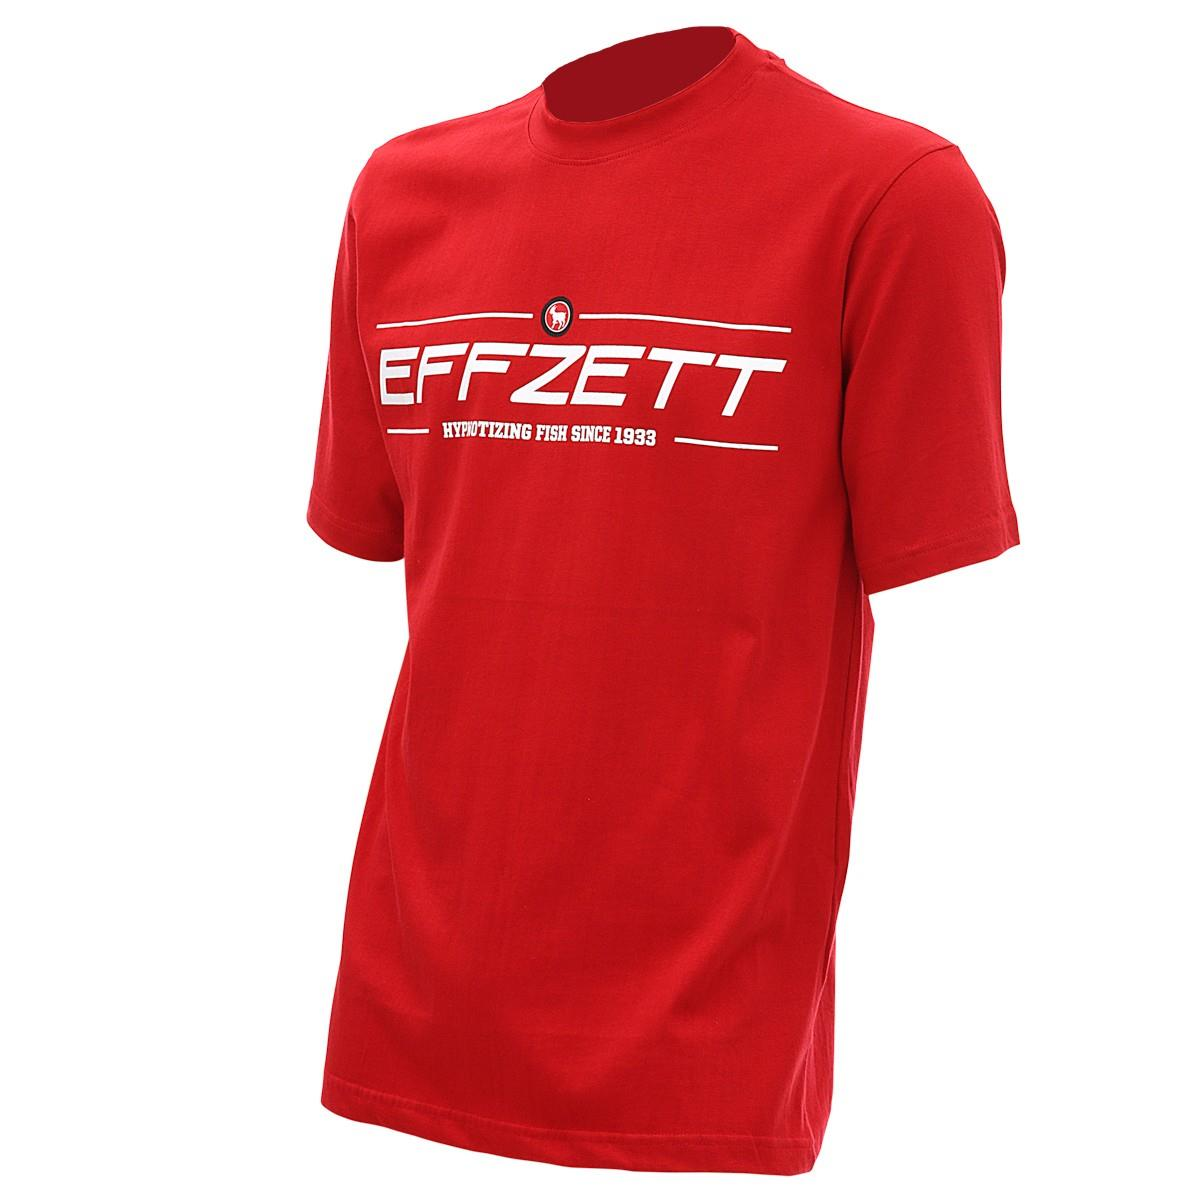 T-Shirt Effzett Since 1938